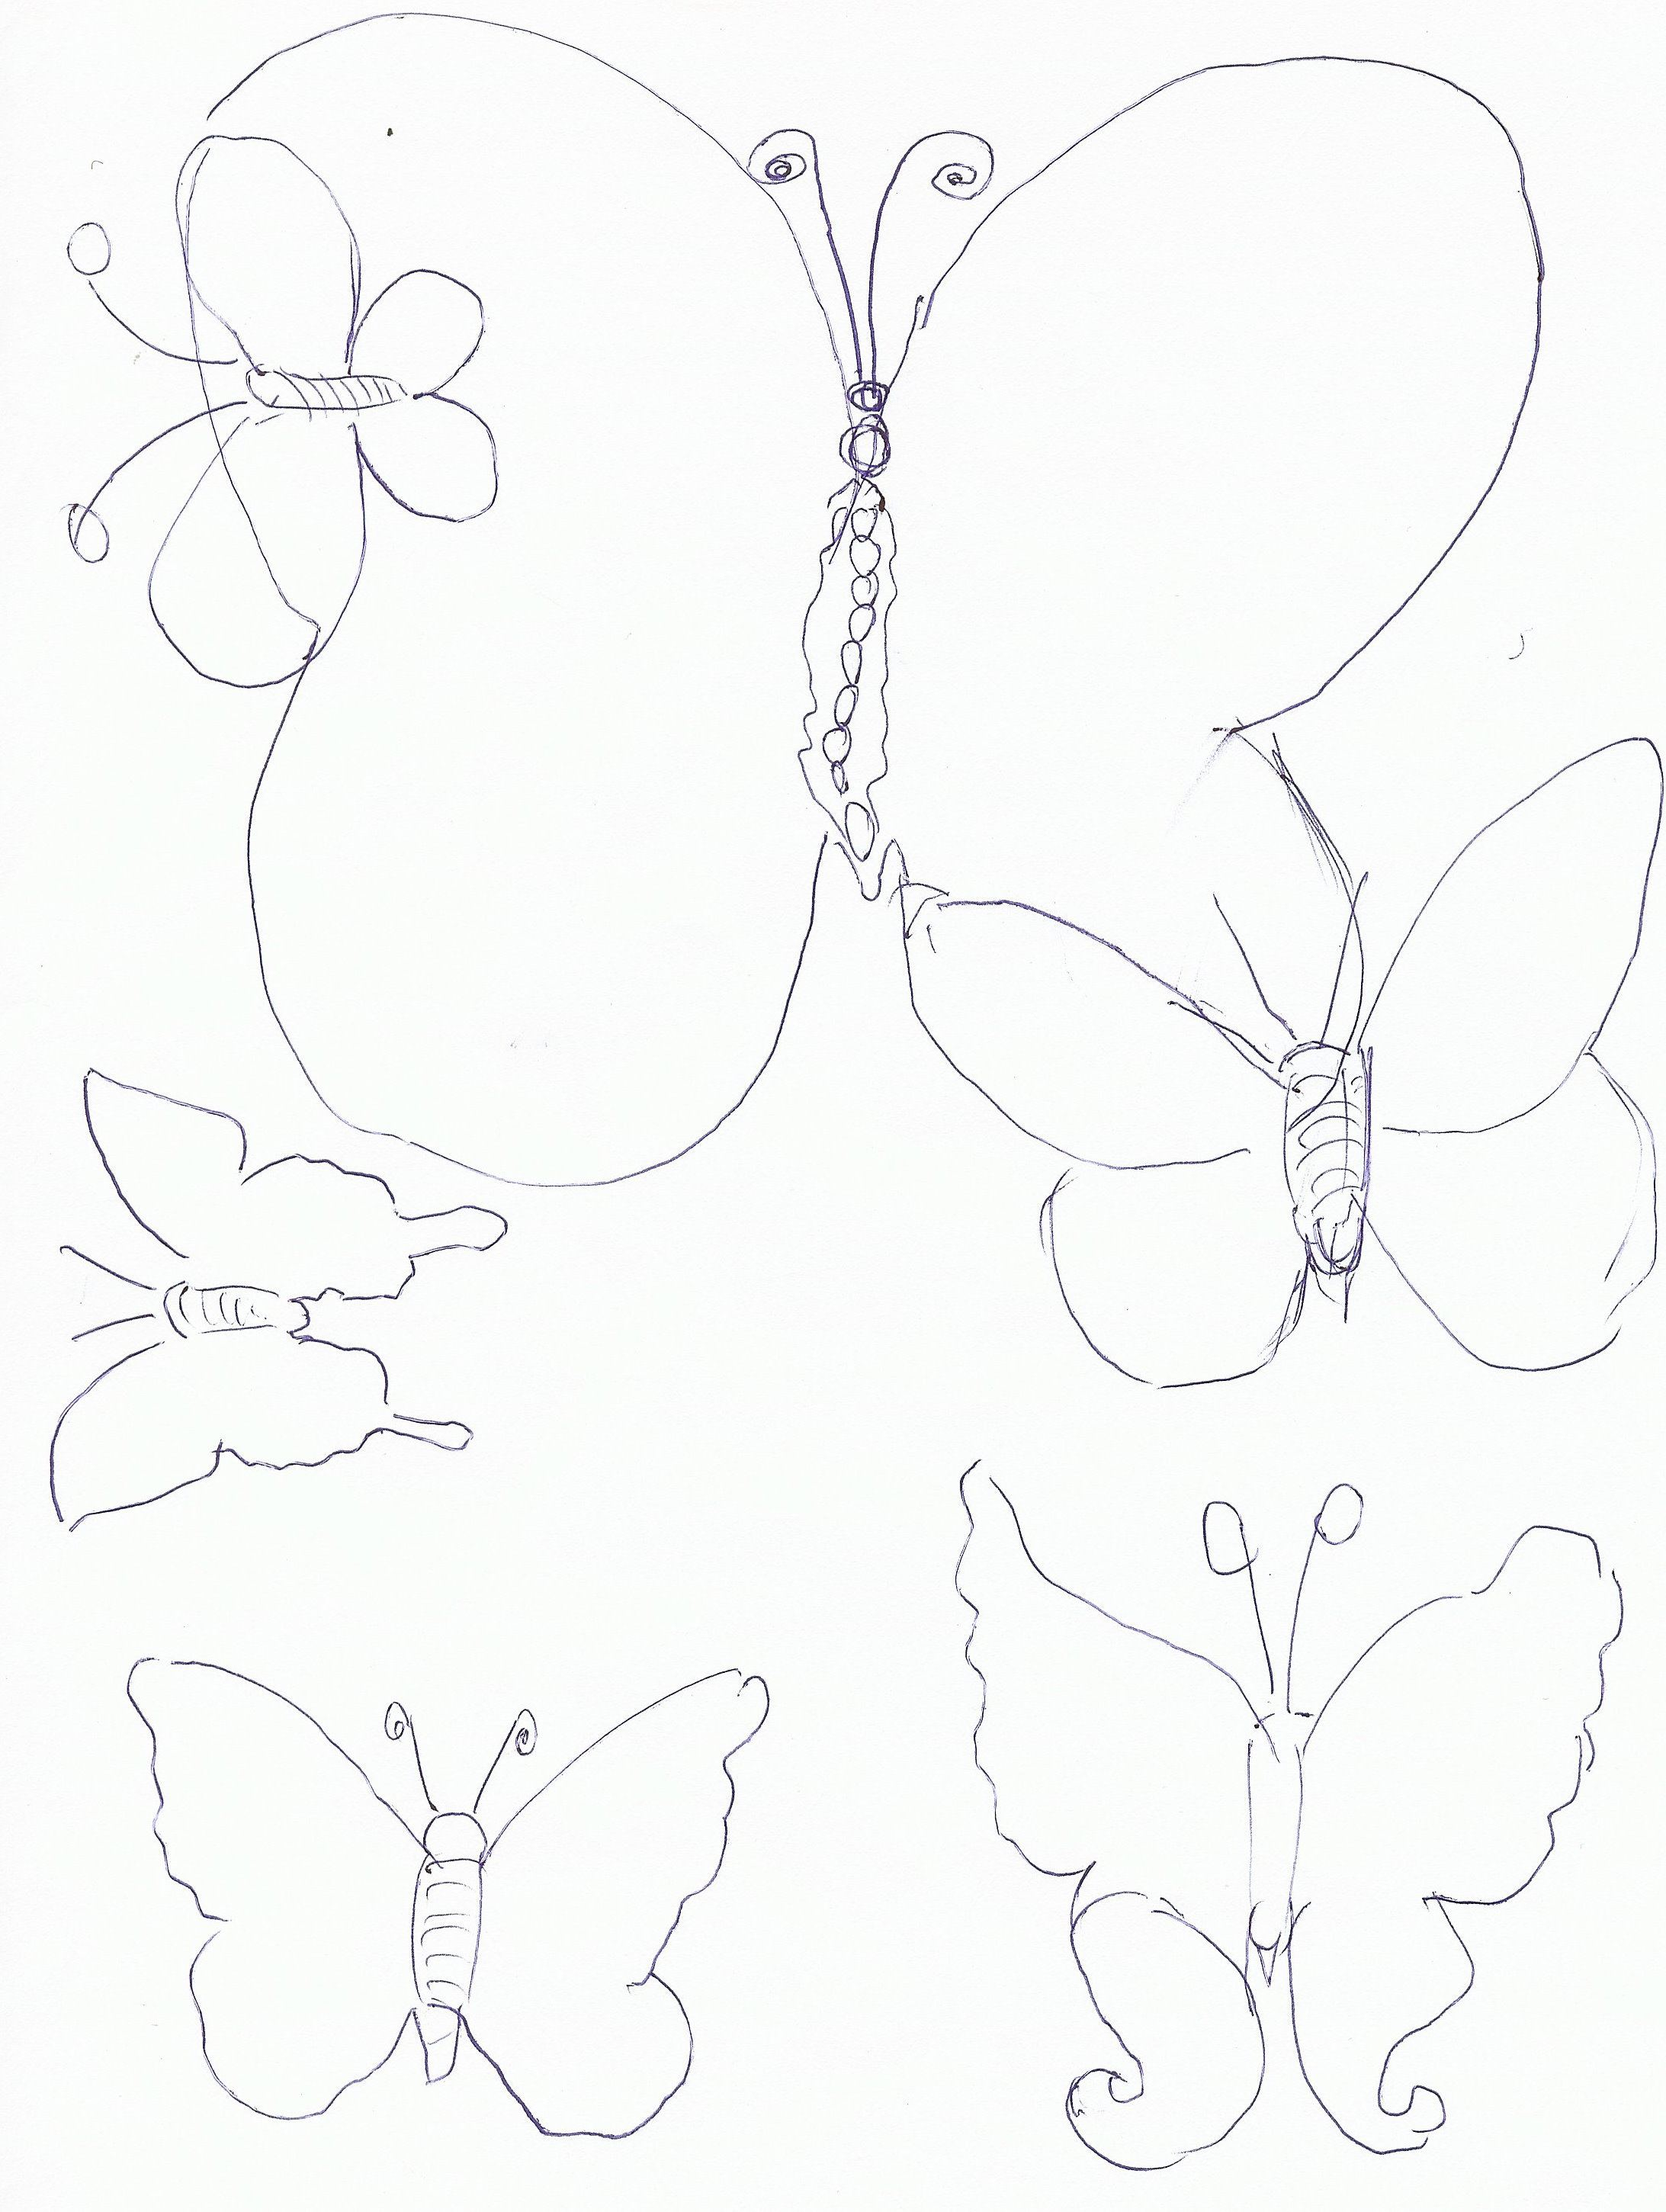 using this butterfly template cut out 4 butterflies of each size out